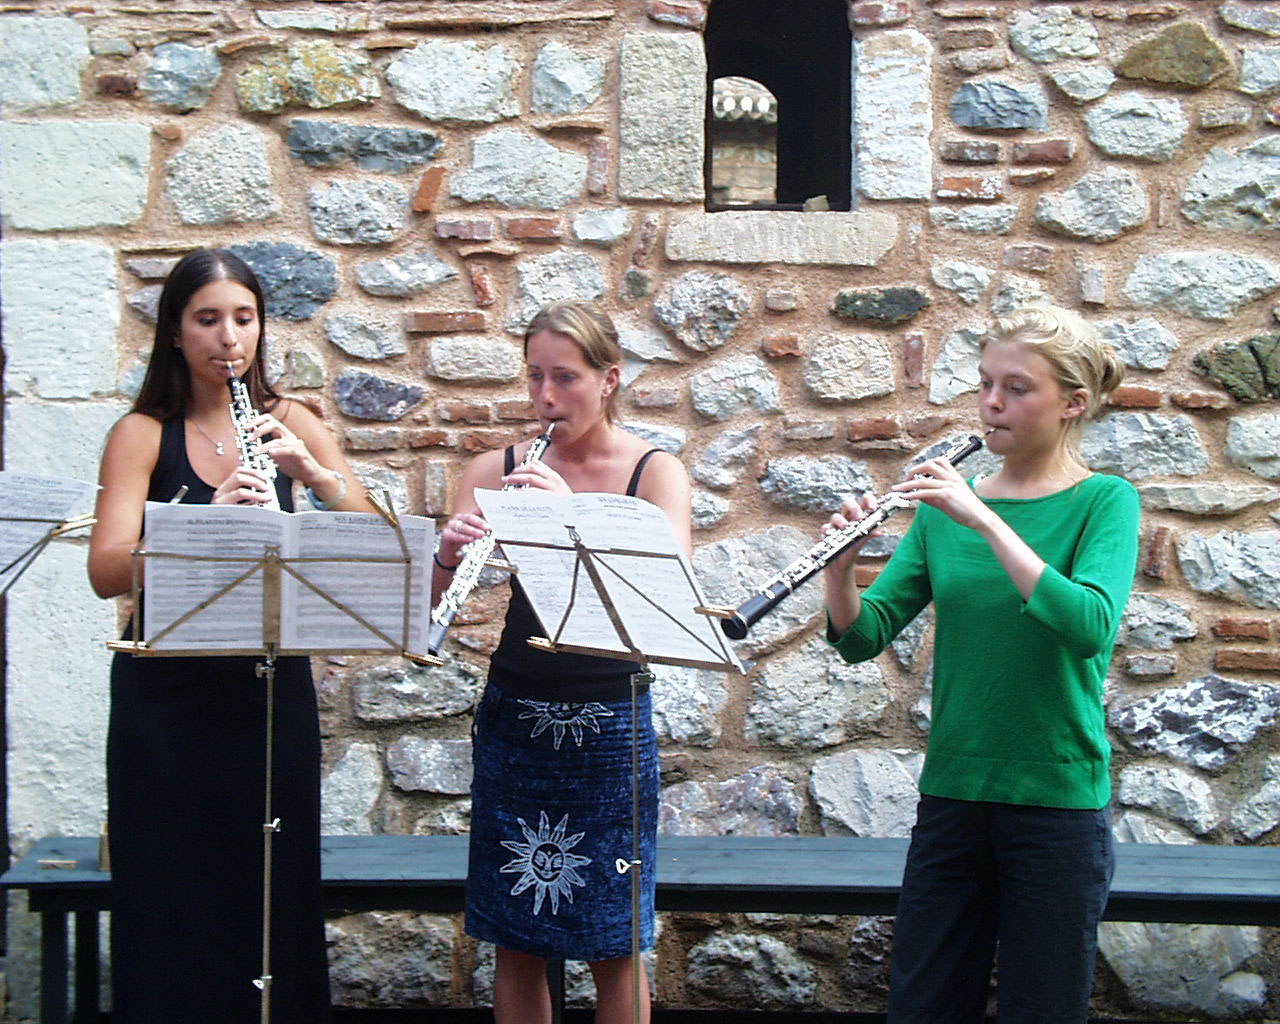 Musical entertainment at Candili